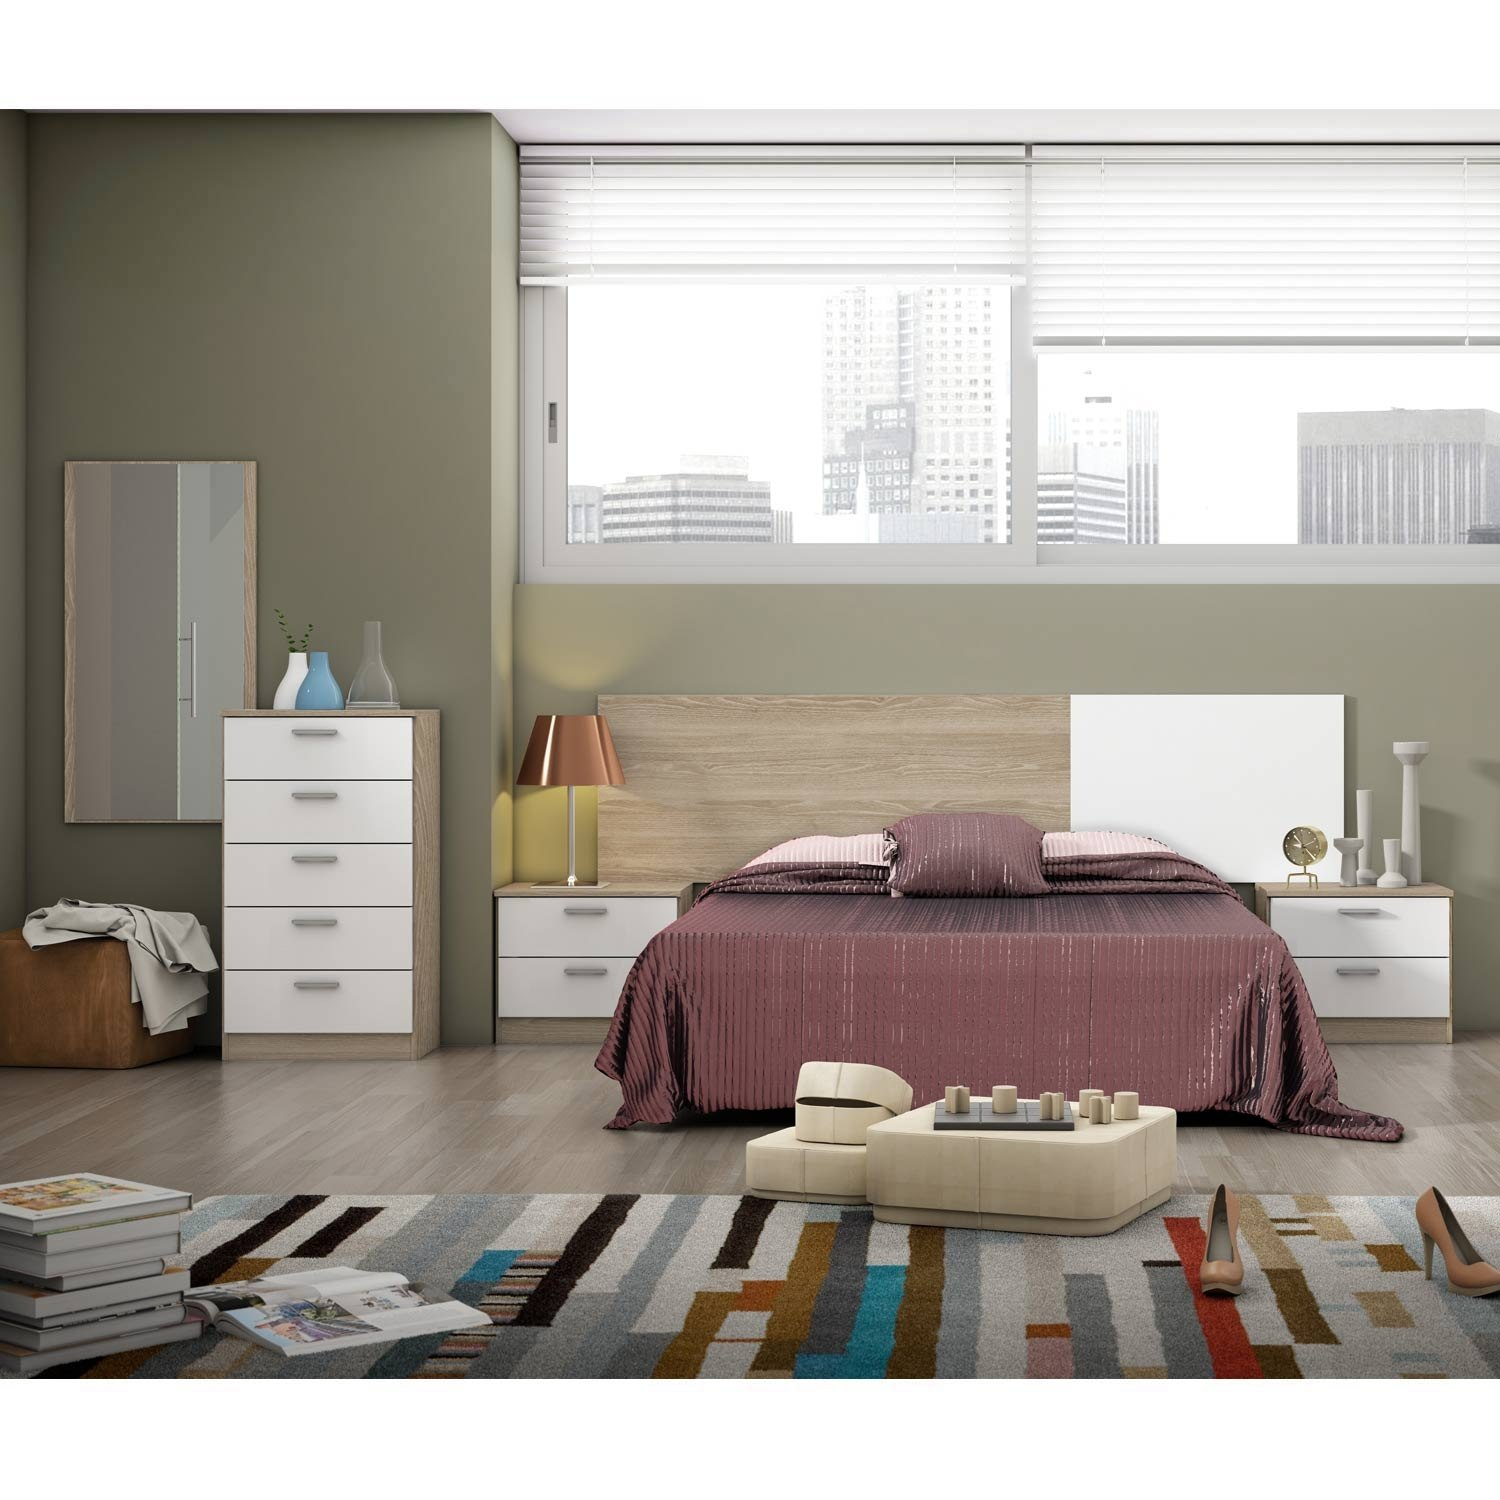 Conjunto de dormitorio couple two dormitorios baratos for Dormitorios modernos en blanco y plata